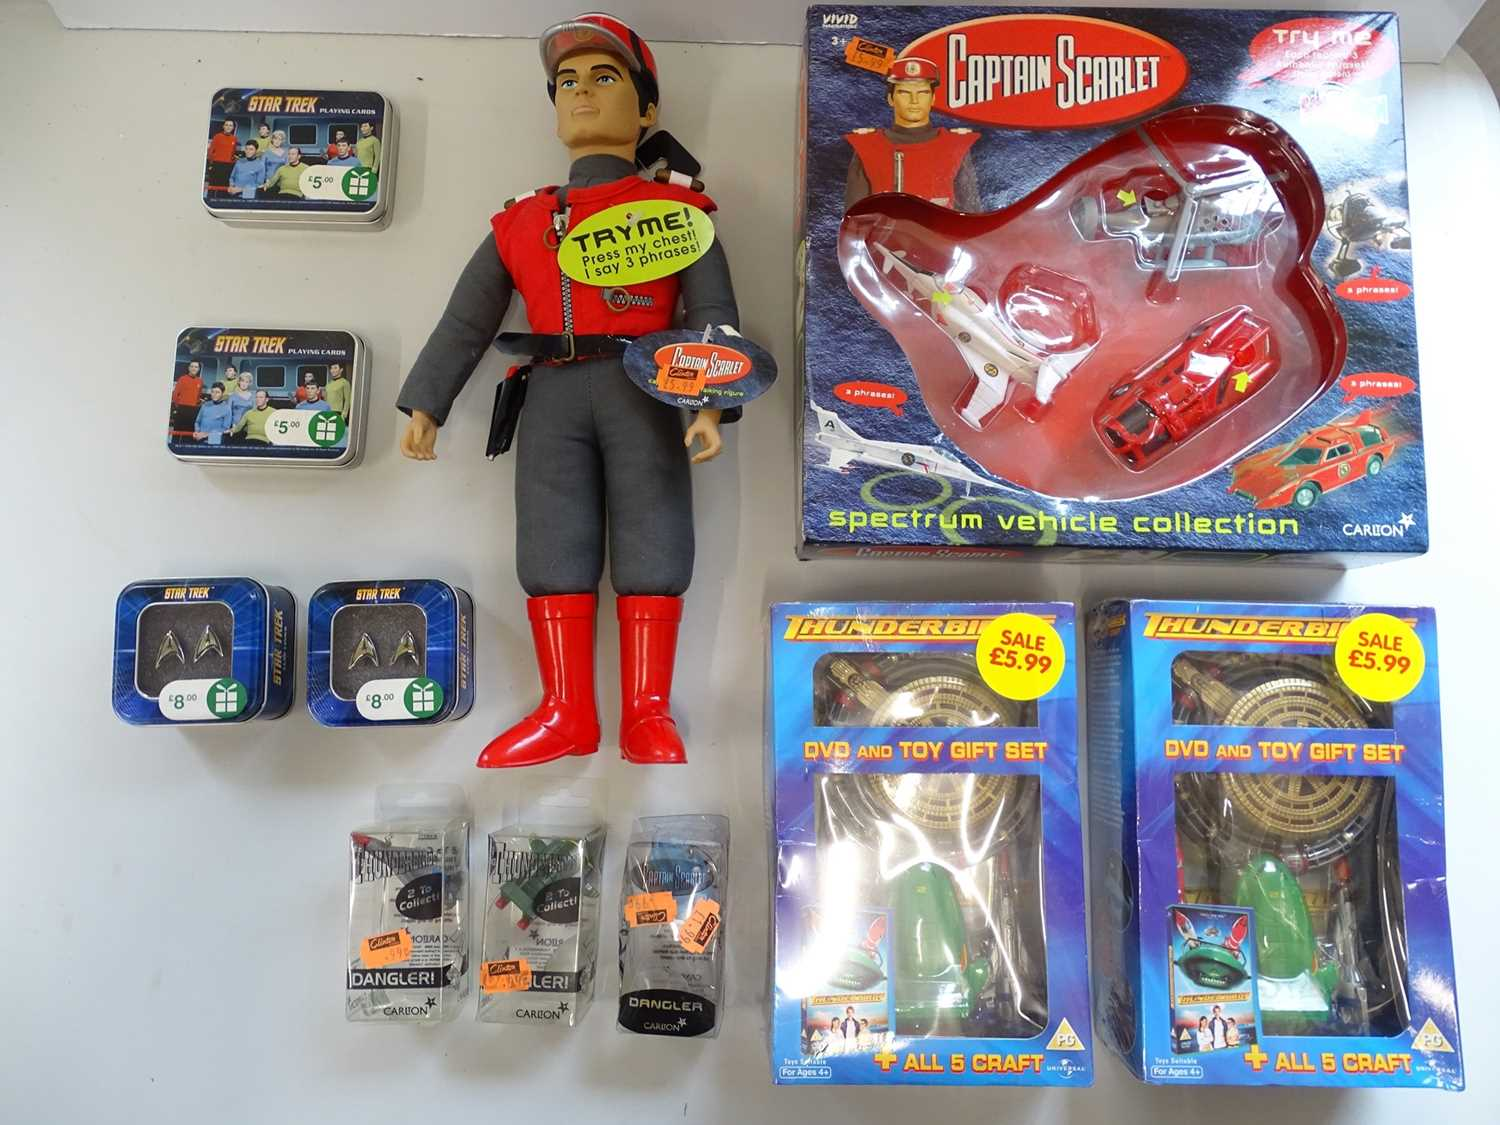 A mixed group of Gerry Anderson & Star Trek toys and ephemera - VG/E (as new) in G boxes where boxed